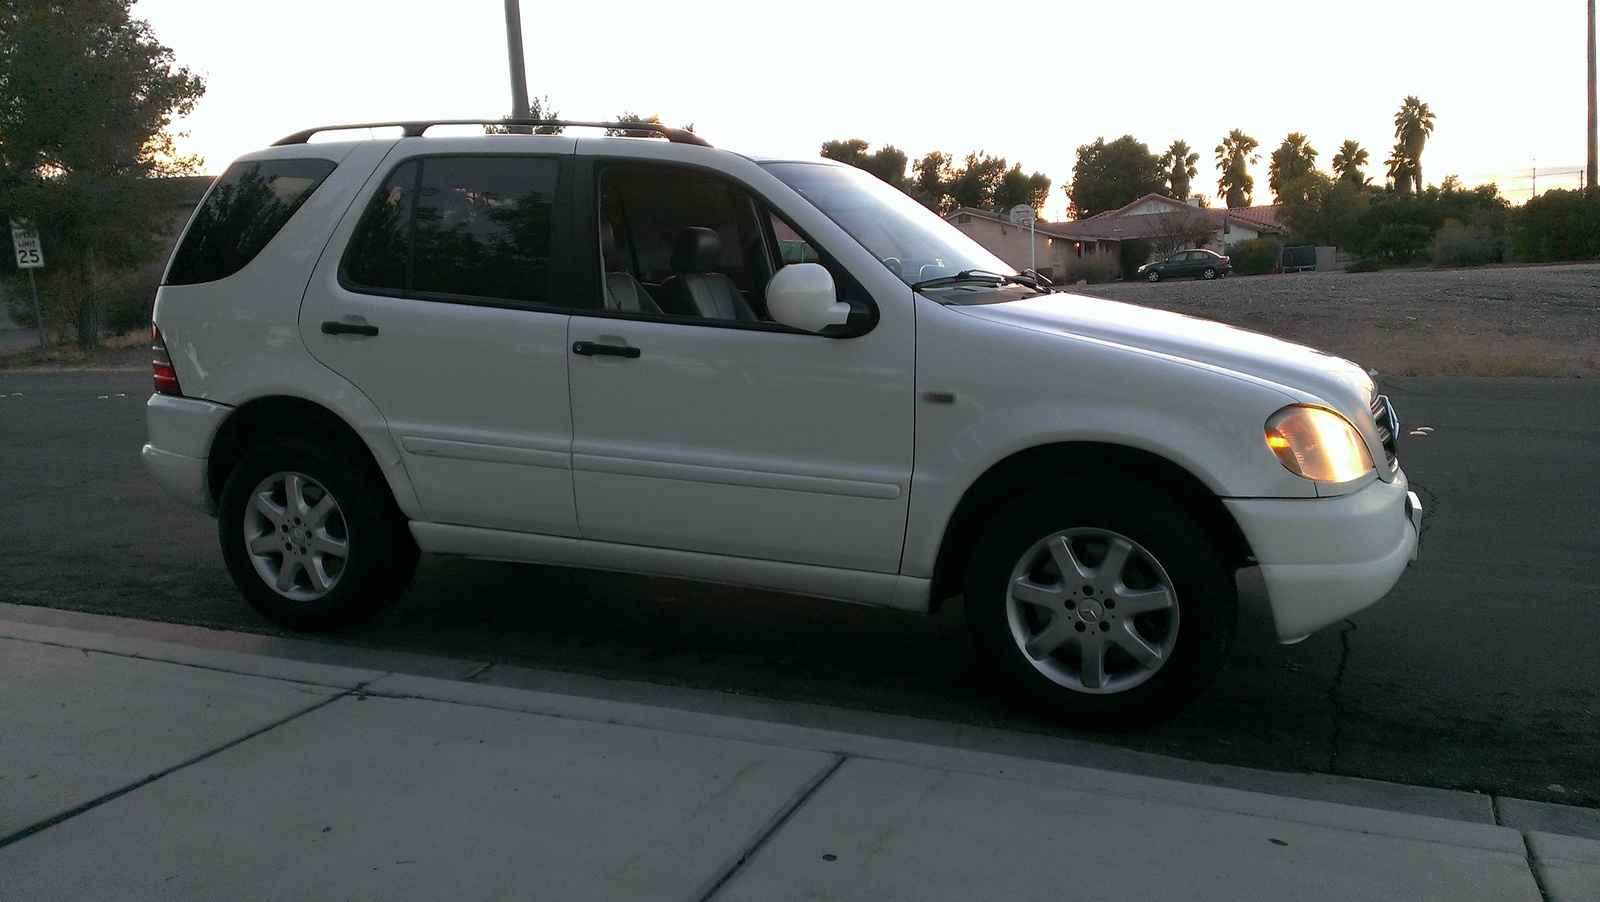 2000 mercedes benz m class pictures cargurus for Mercedes benz ml430 for sale